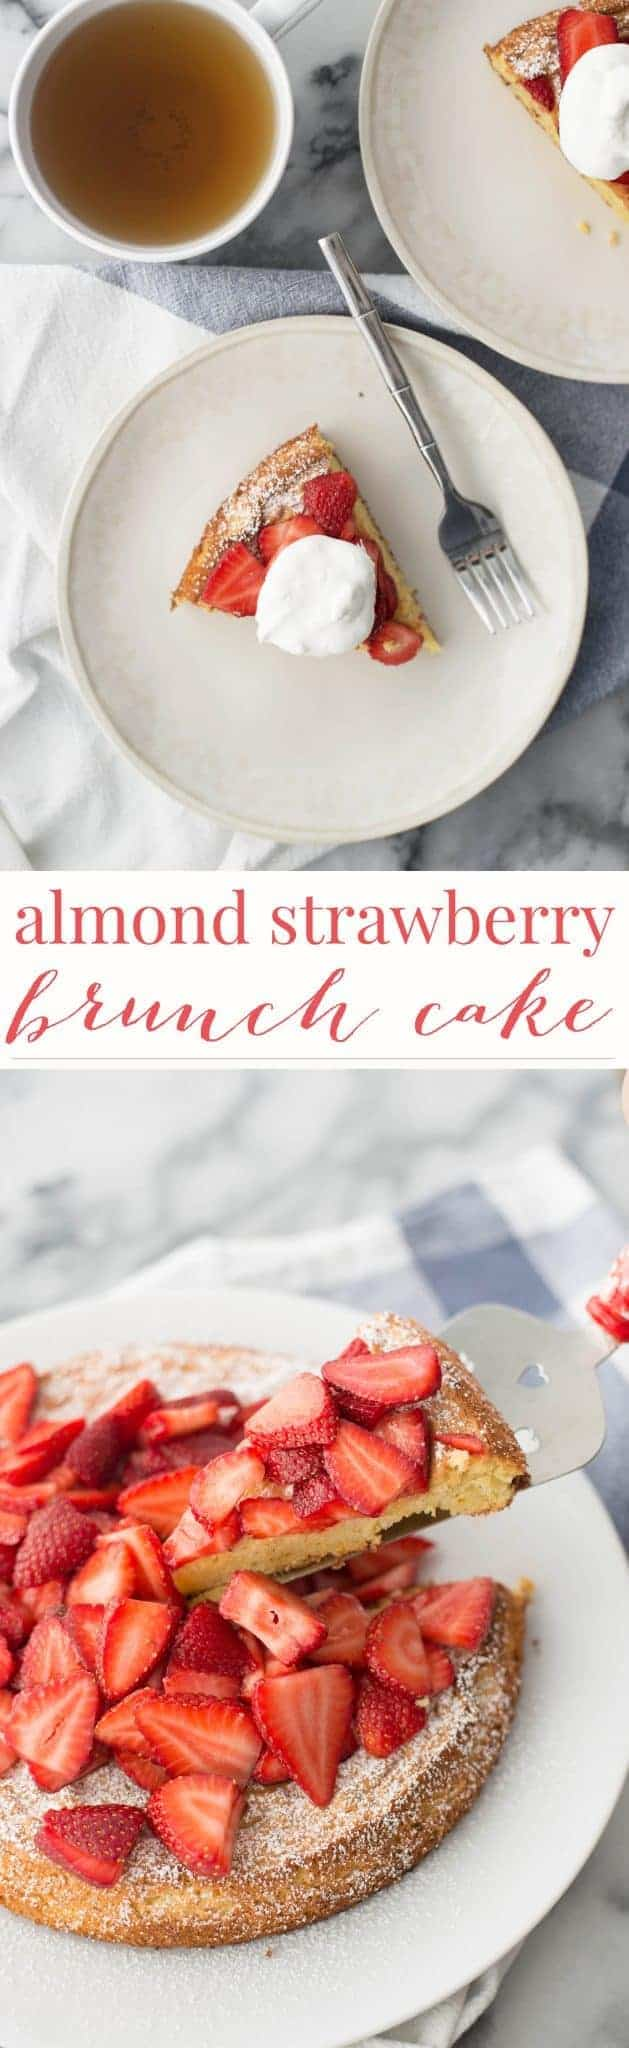 Almond Strawberry Cake. The perfect brunch cake, lightly sweetened almond cake topped with orange-scented berries. | delishknowledge.com